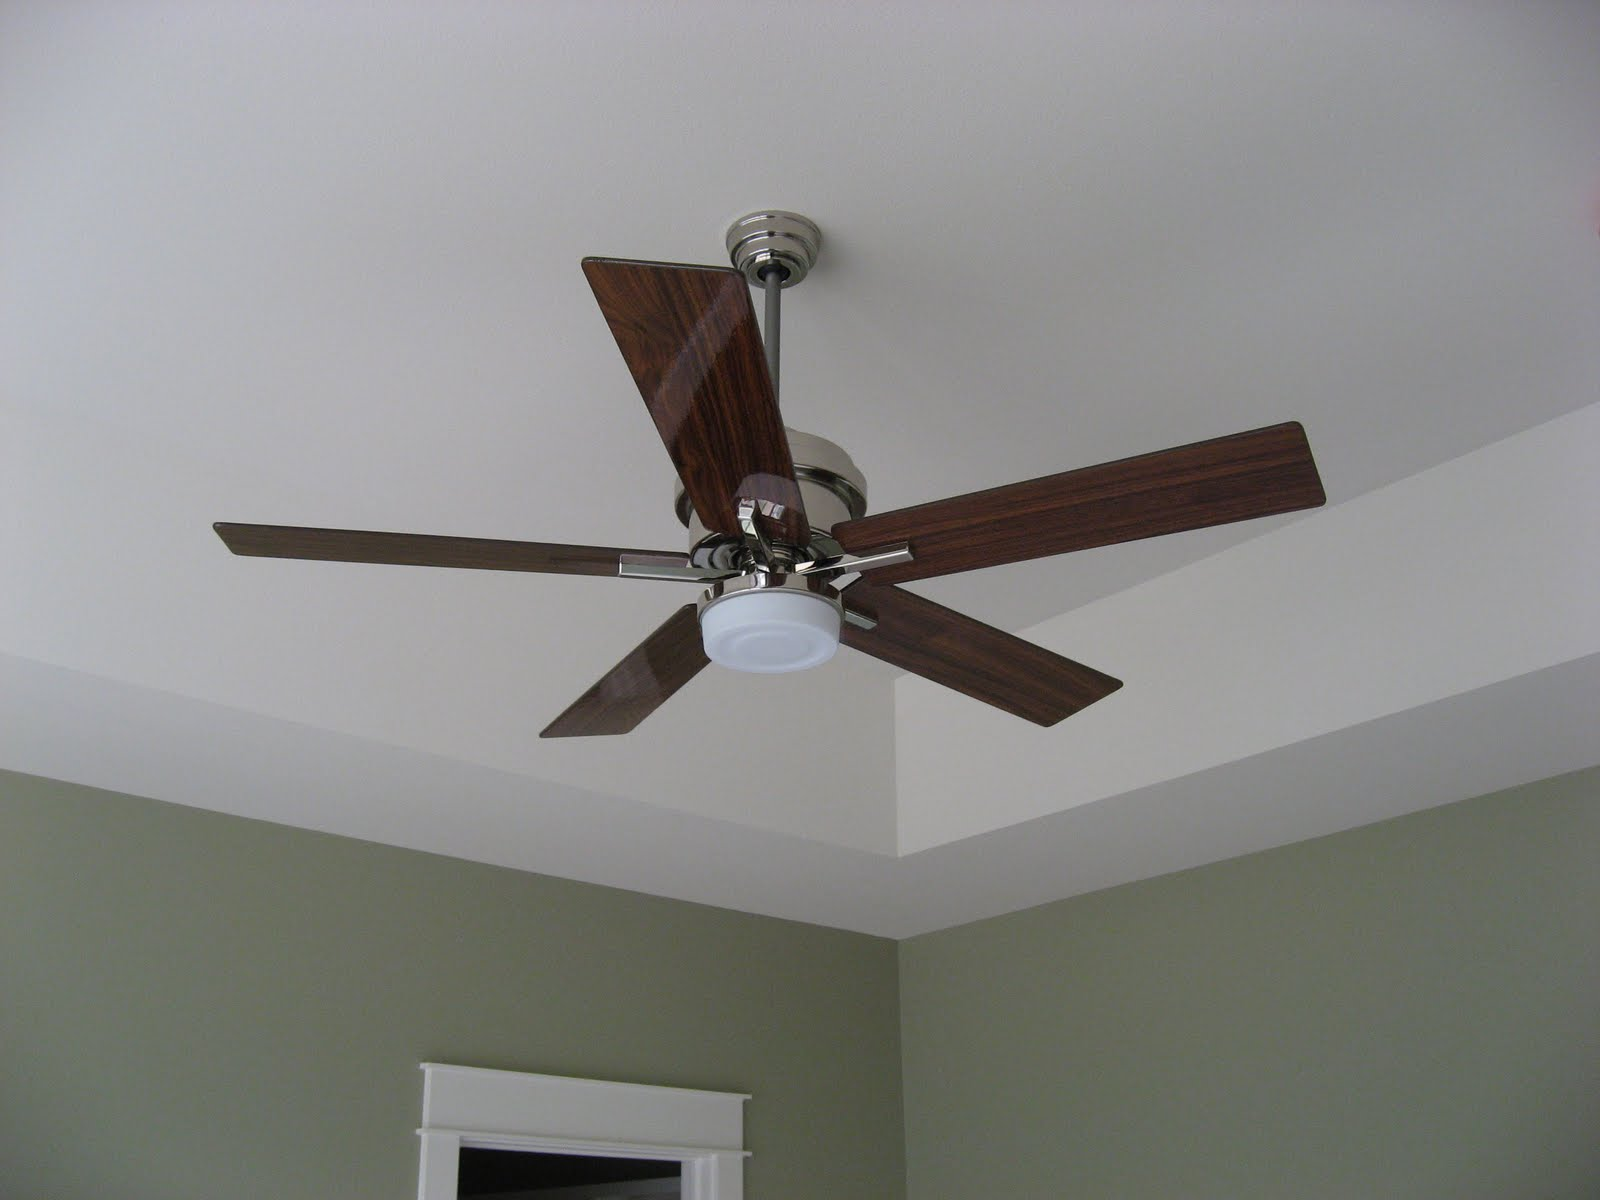 Green house good life why are ceiling fans always so ugly and then choosing fans like he chooses work pants all khaki all the time he picked the same one for the master bedroom aloadofball Images